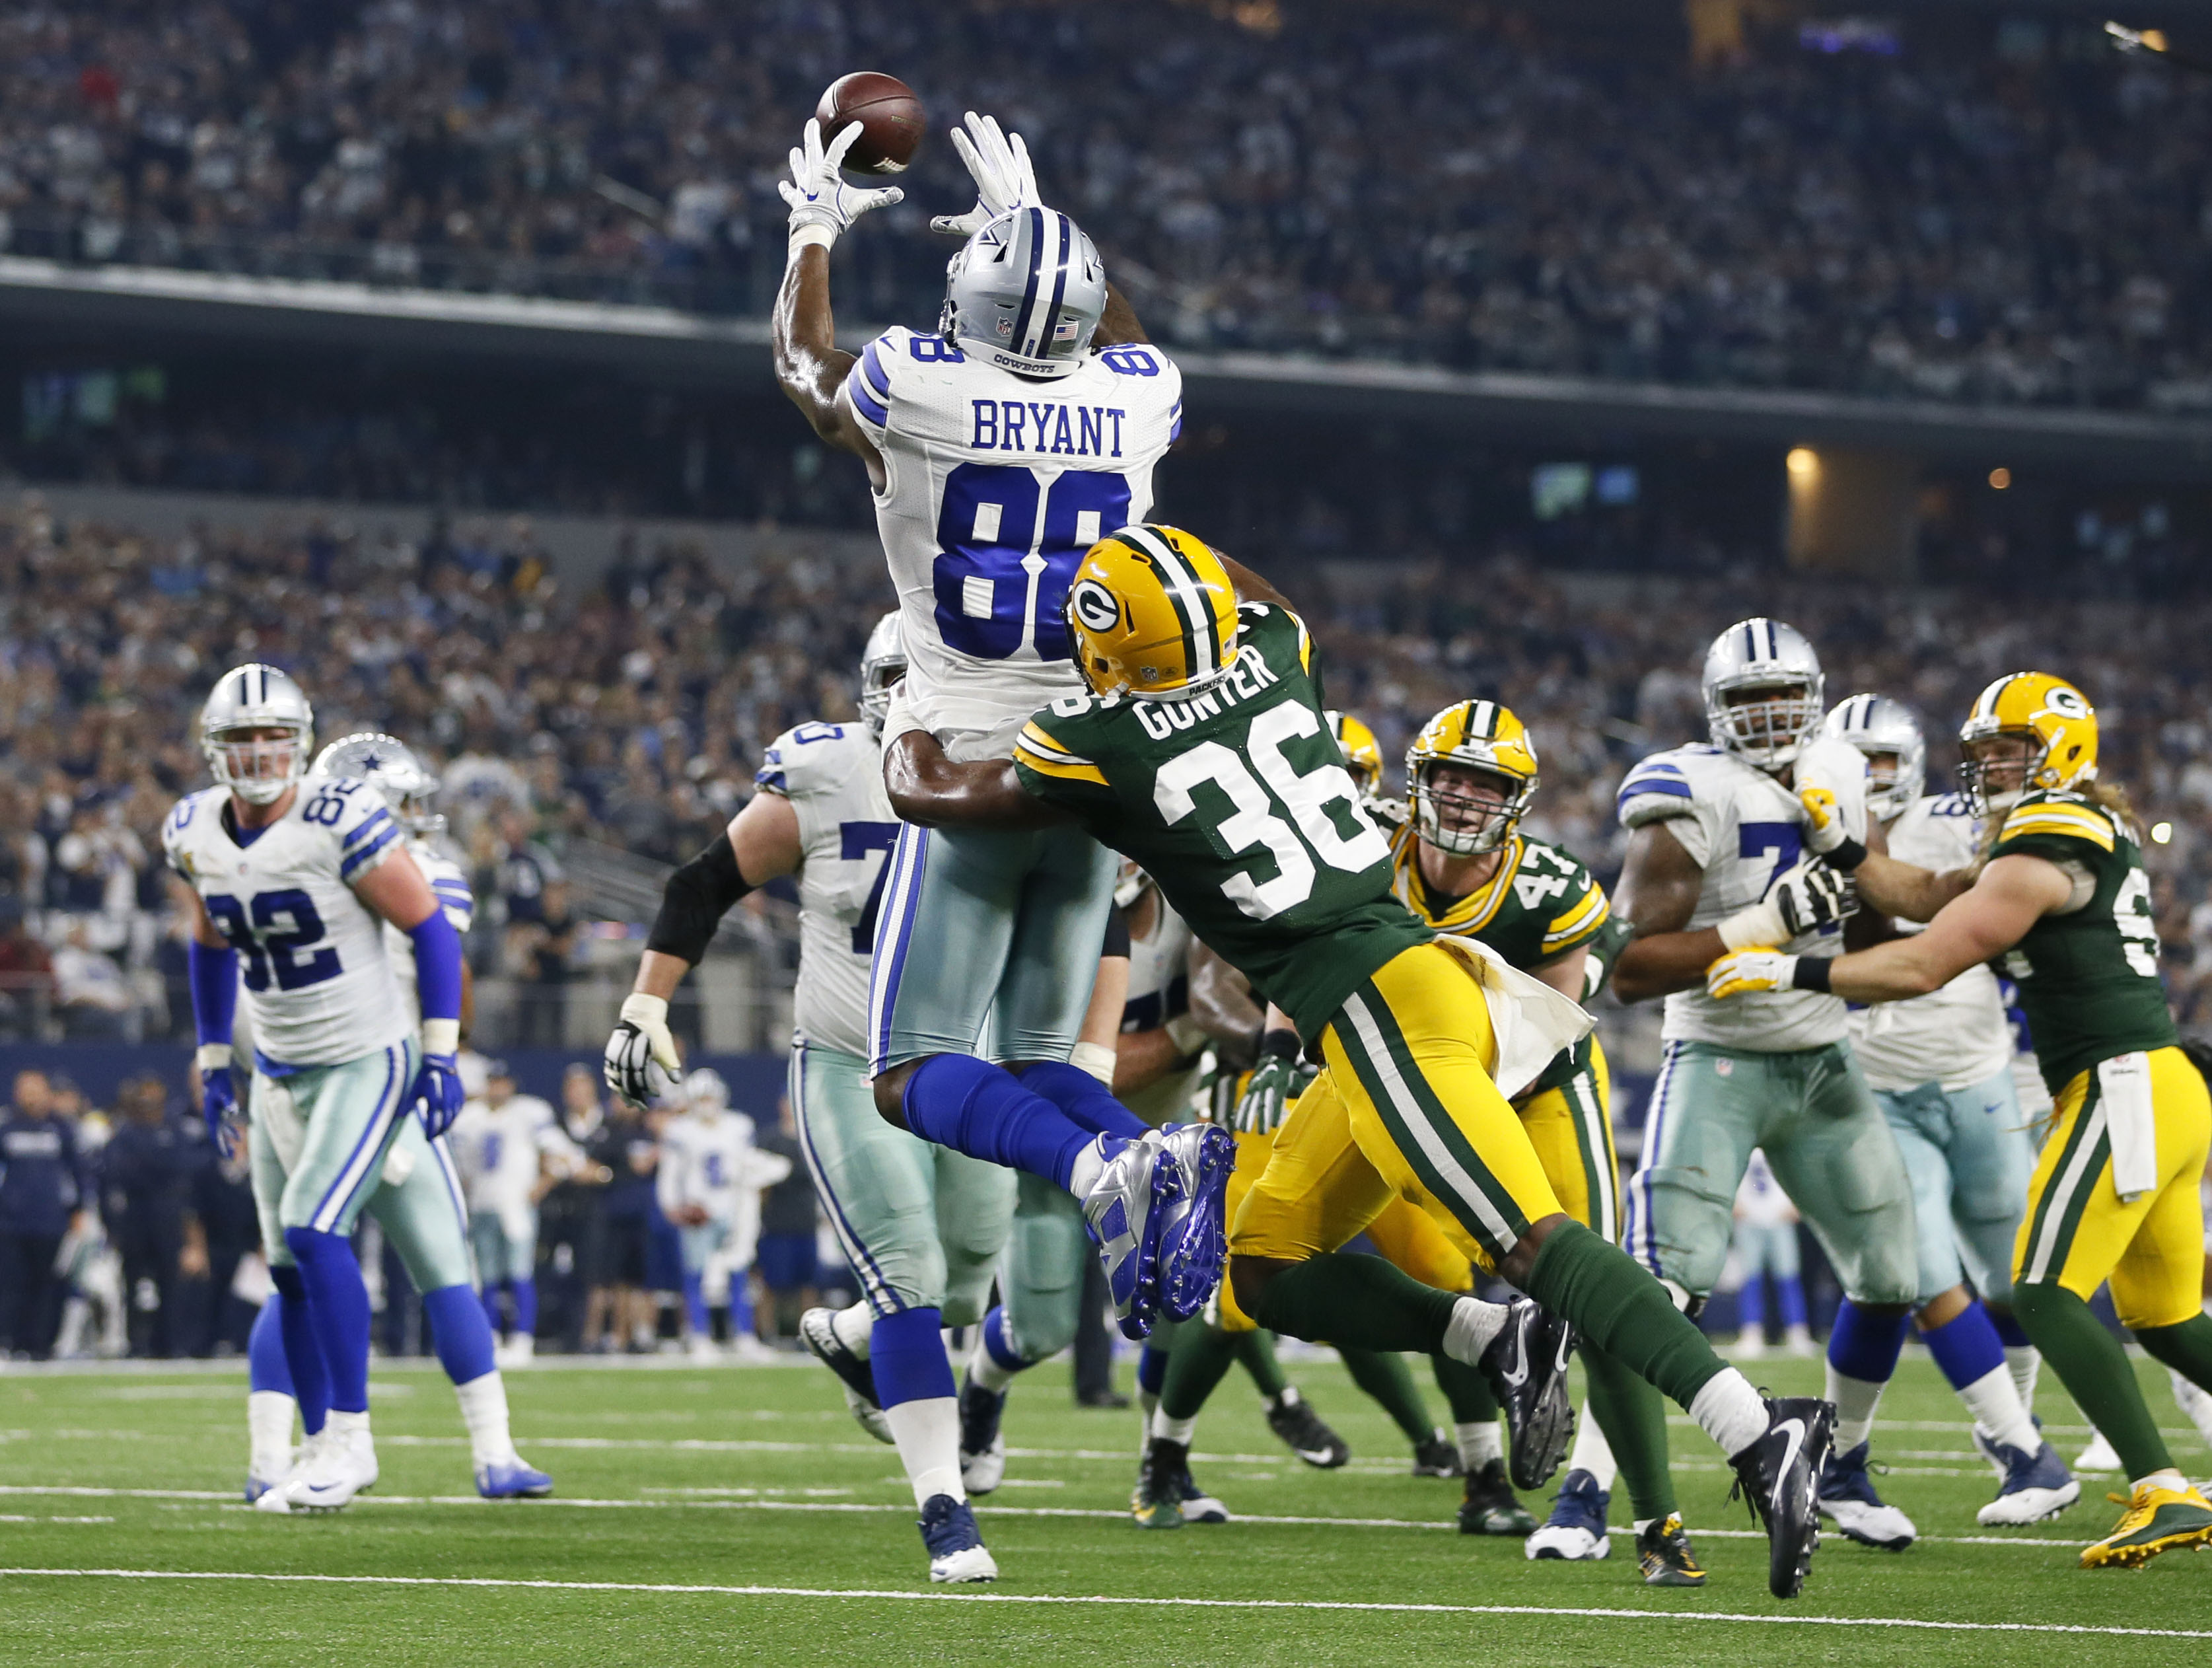 Dallas Cowboys: Post-NFL draft depth chart projection - Page 4